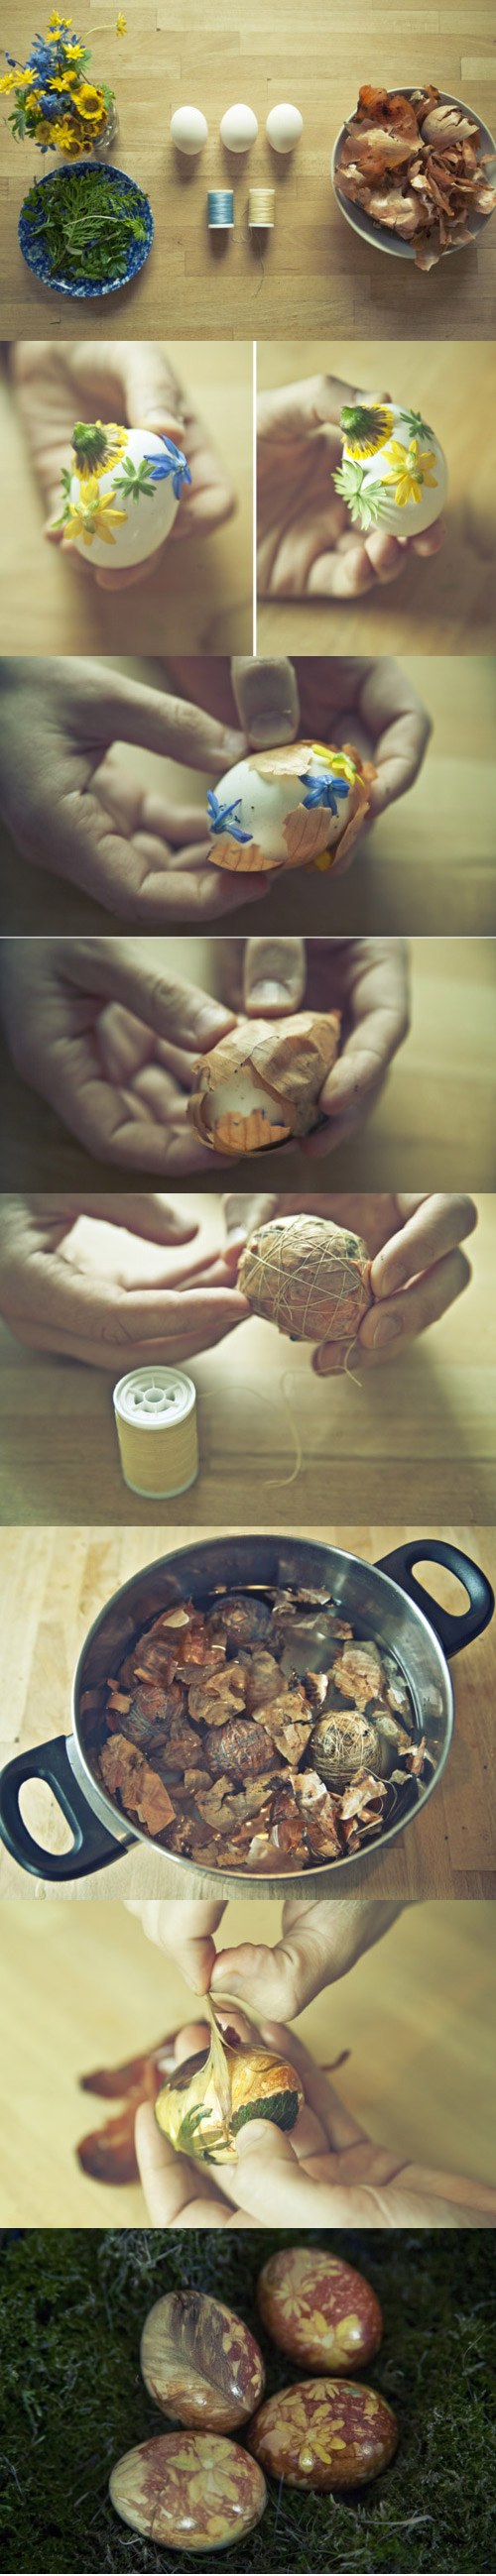 how-to-stain-a-egg